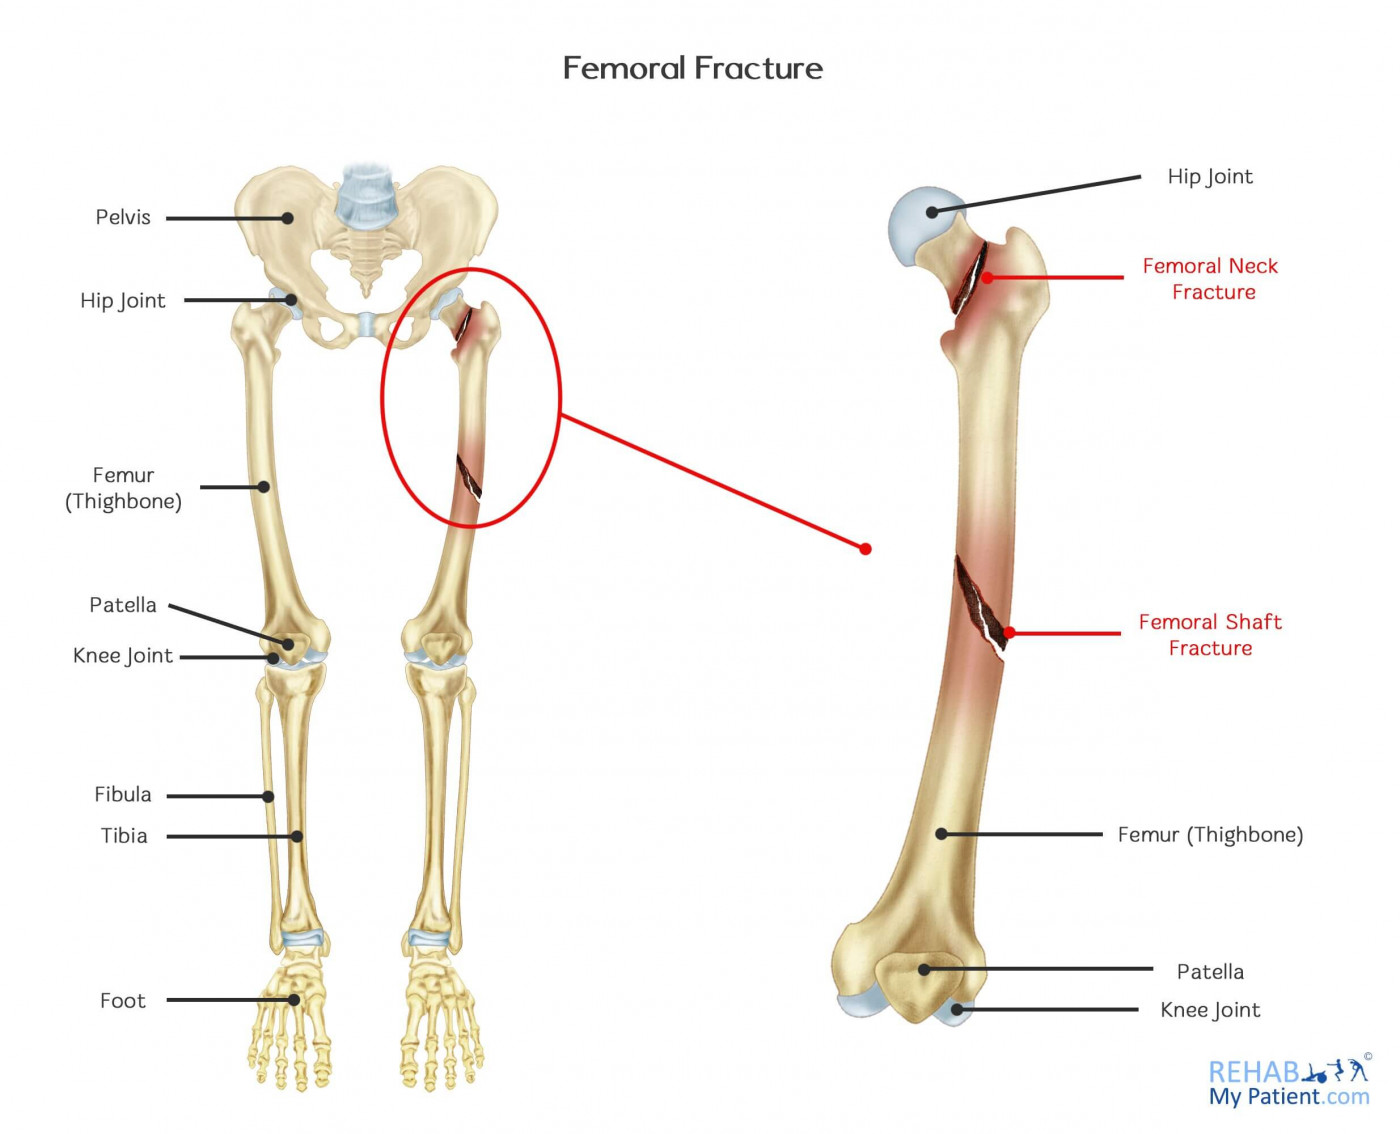 Femoral Fracture | Rehab My Patient